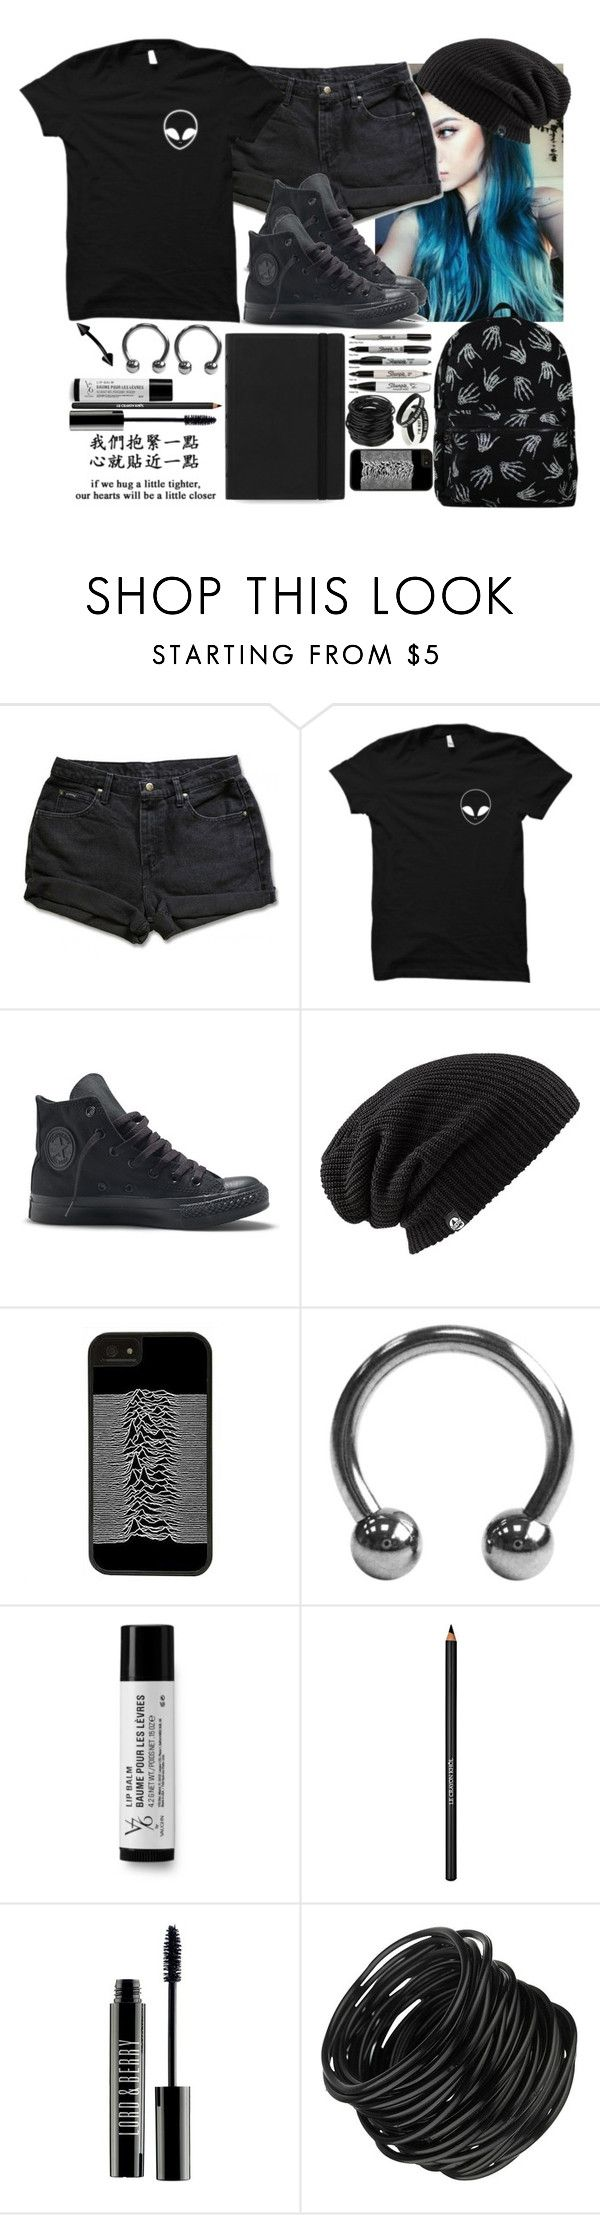 """""""[Travelling to Greece w/ the girls]"""" by purplemonkeys005 on Polyvore featuring Mavi, Converse, FiloFax, CellPowerCases, V76 by Vaughn, Lancôme, Lord & Berry and mandy"""